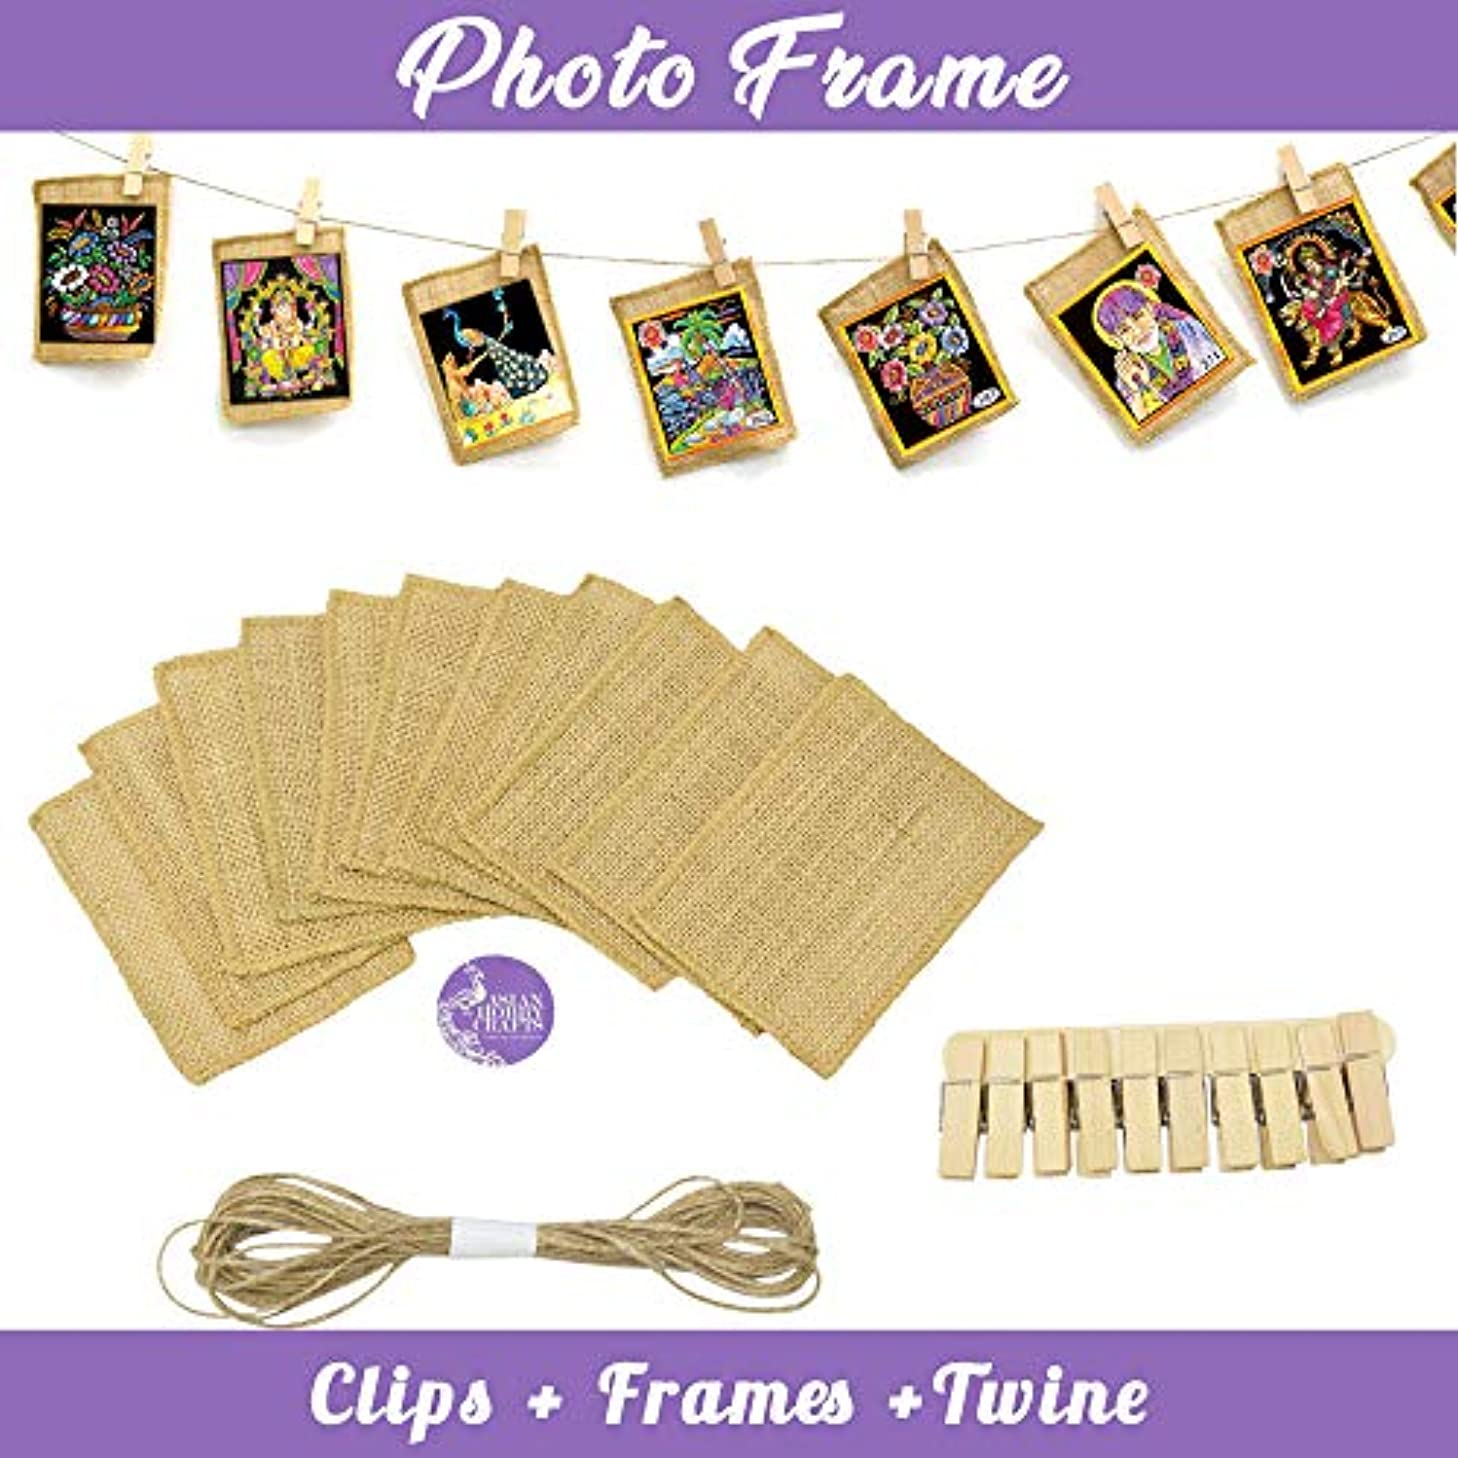 Asian Hobby Crafts Wooden Photo Hanging Clips (15 pcs) and Jute Picture Frame Cut Outs 5 x 4 inch (12 pcs) with Jute Twine (11 Yards) for Photo Hanging Display, DIY Crafts